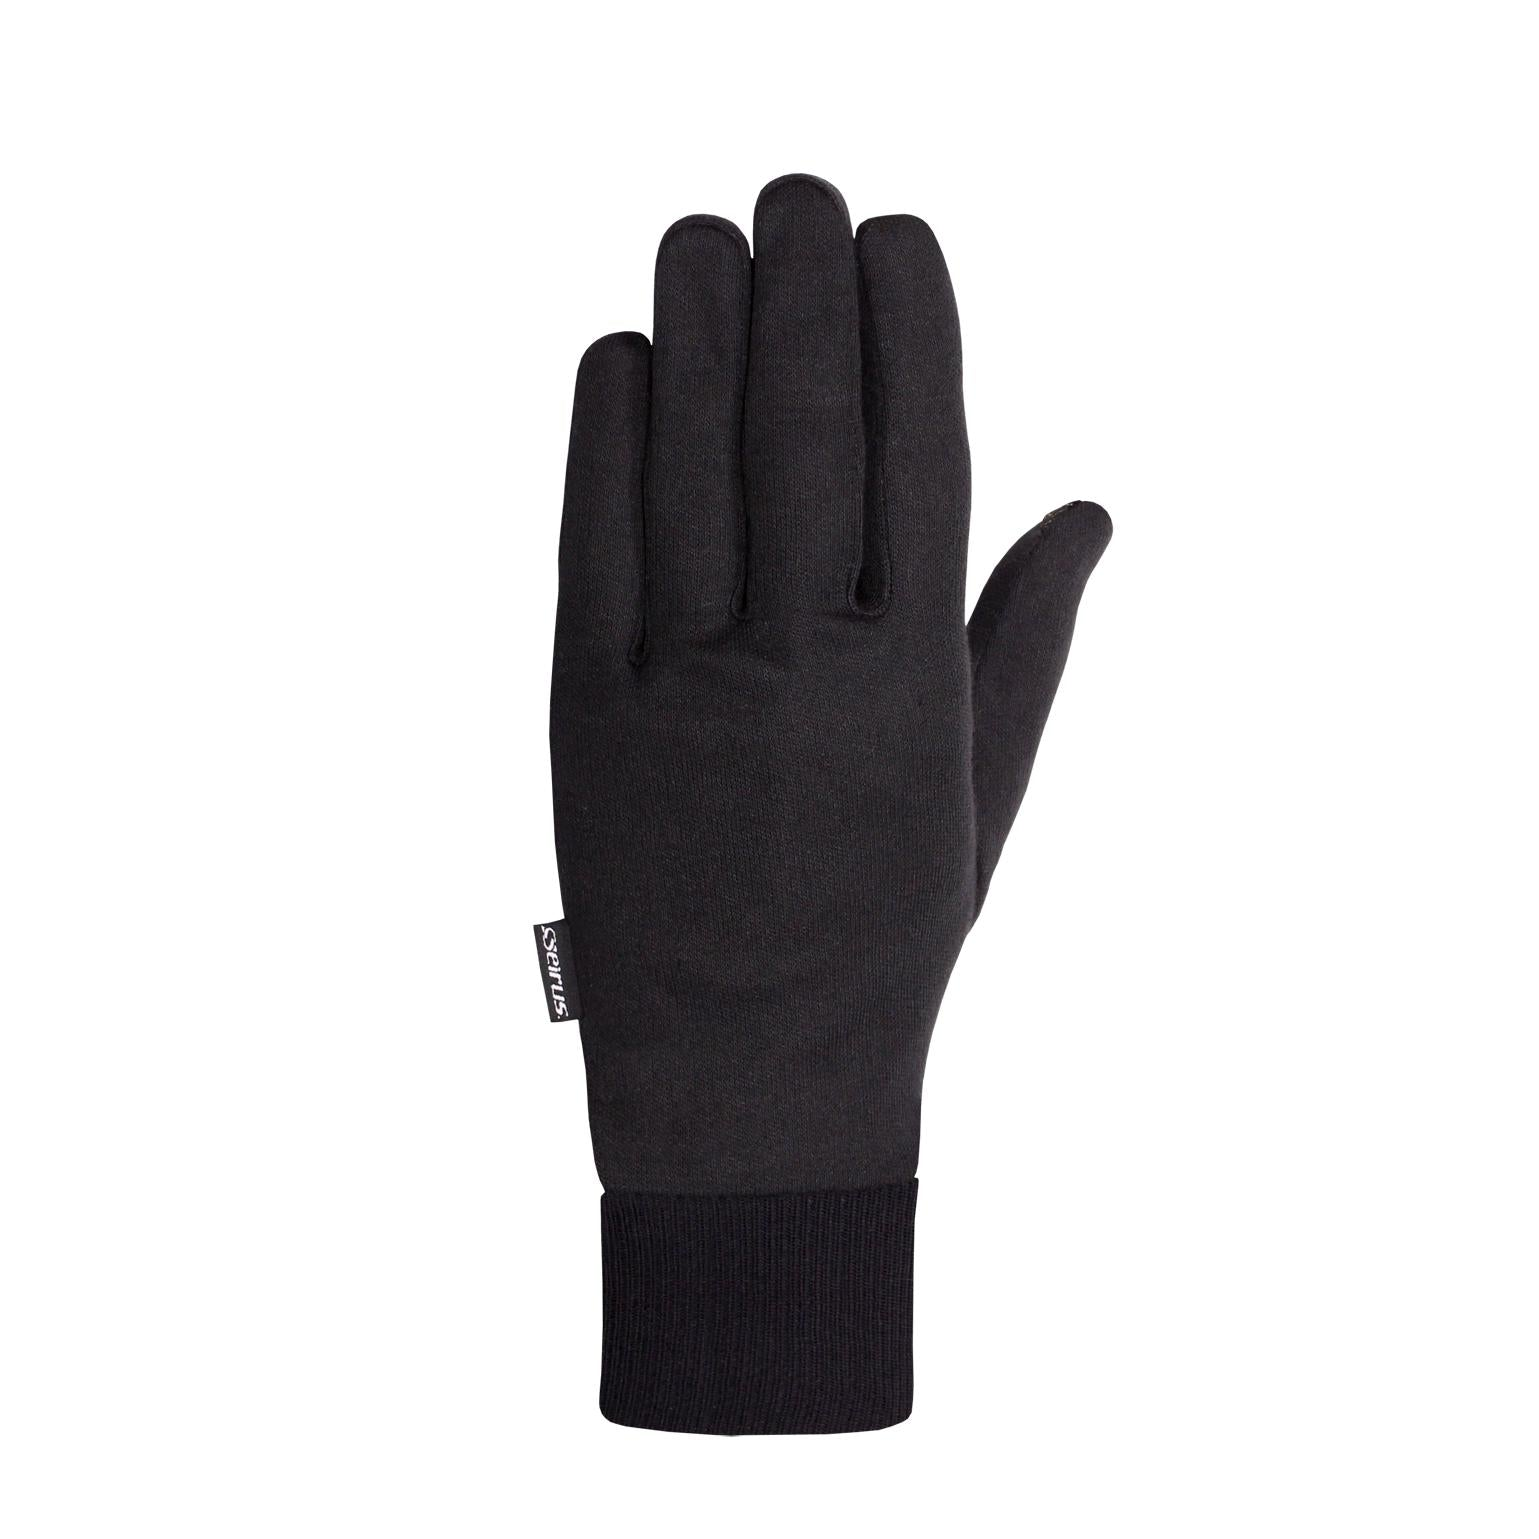 Seirus Deluxe™ Thermax® Glove Liner-Clothing Accessories-Serius Innovation-2 Foot Adventures